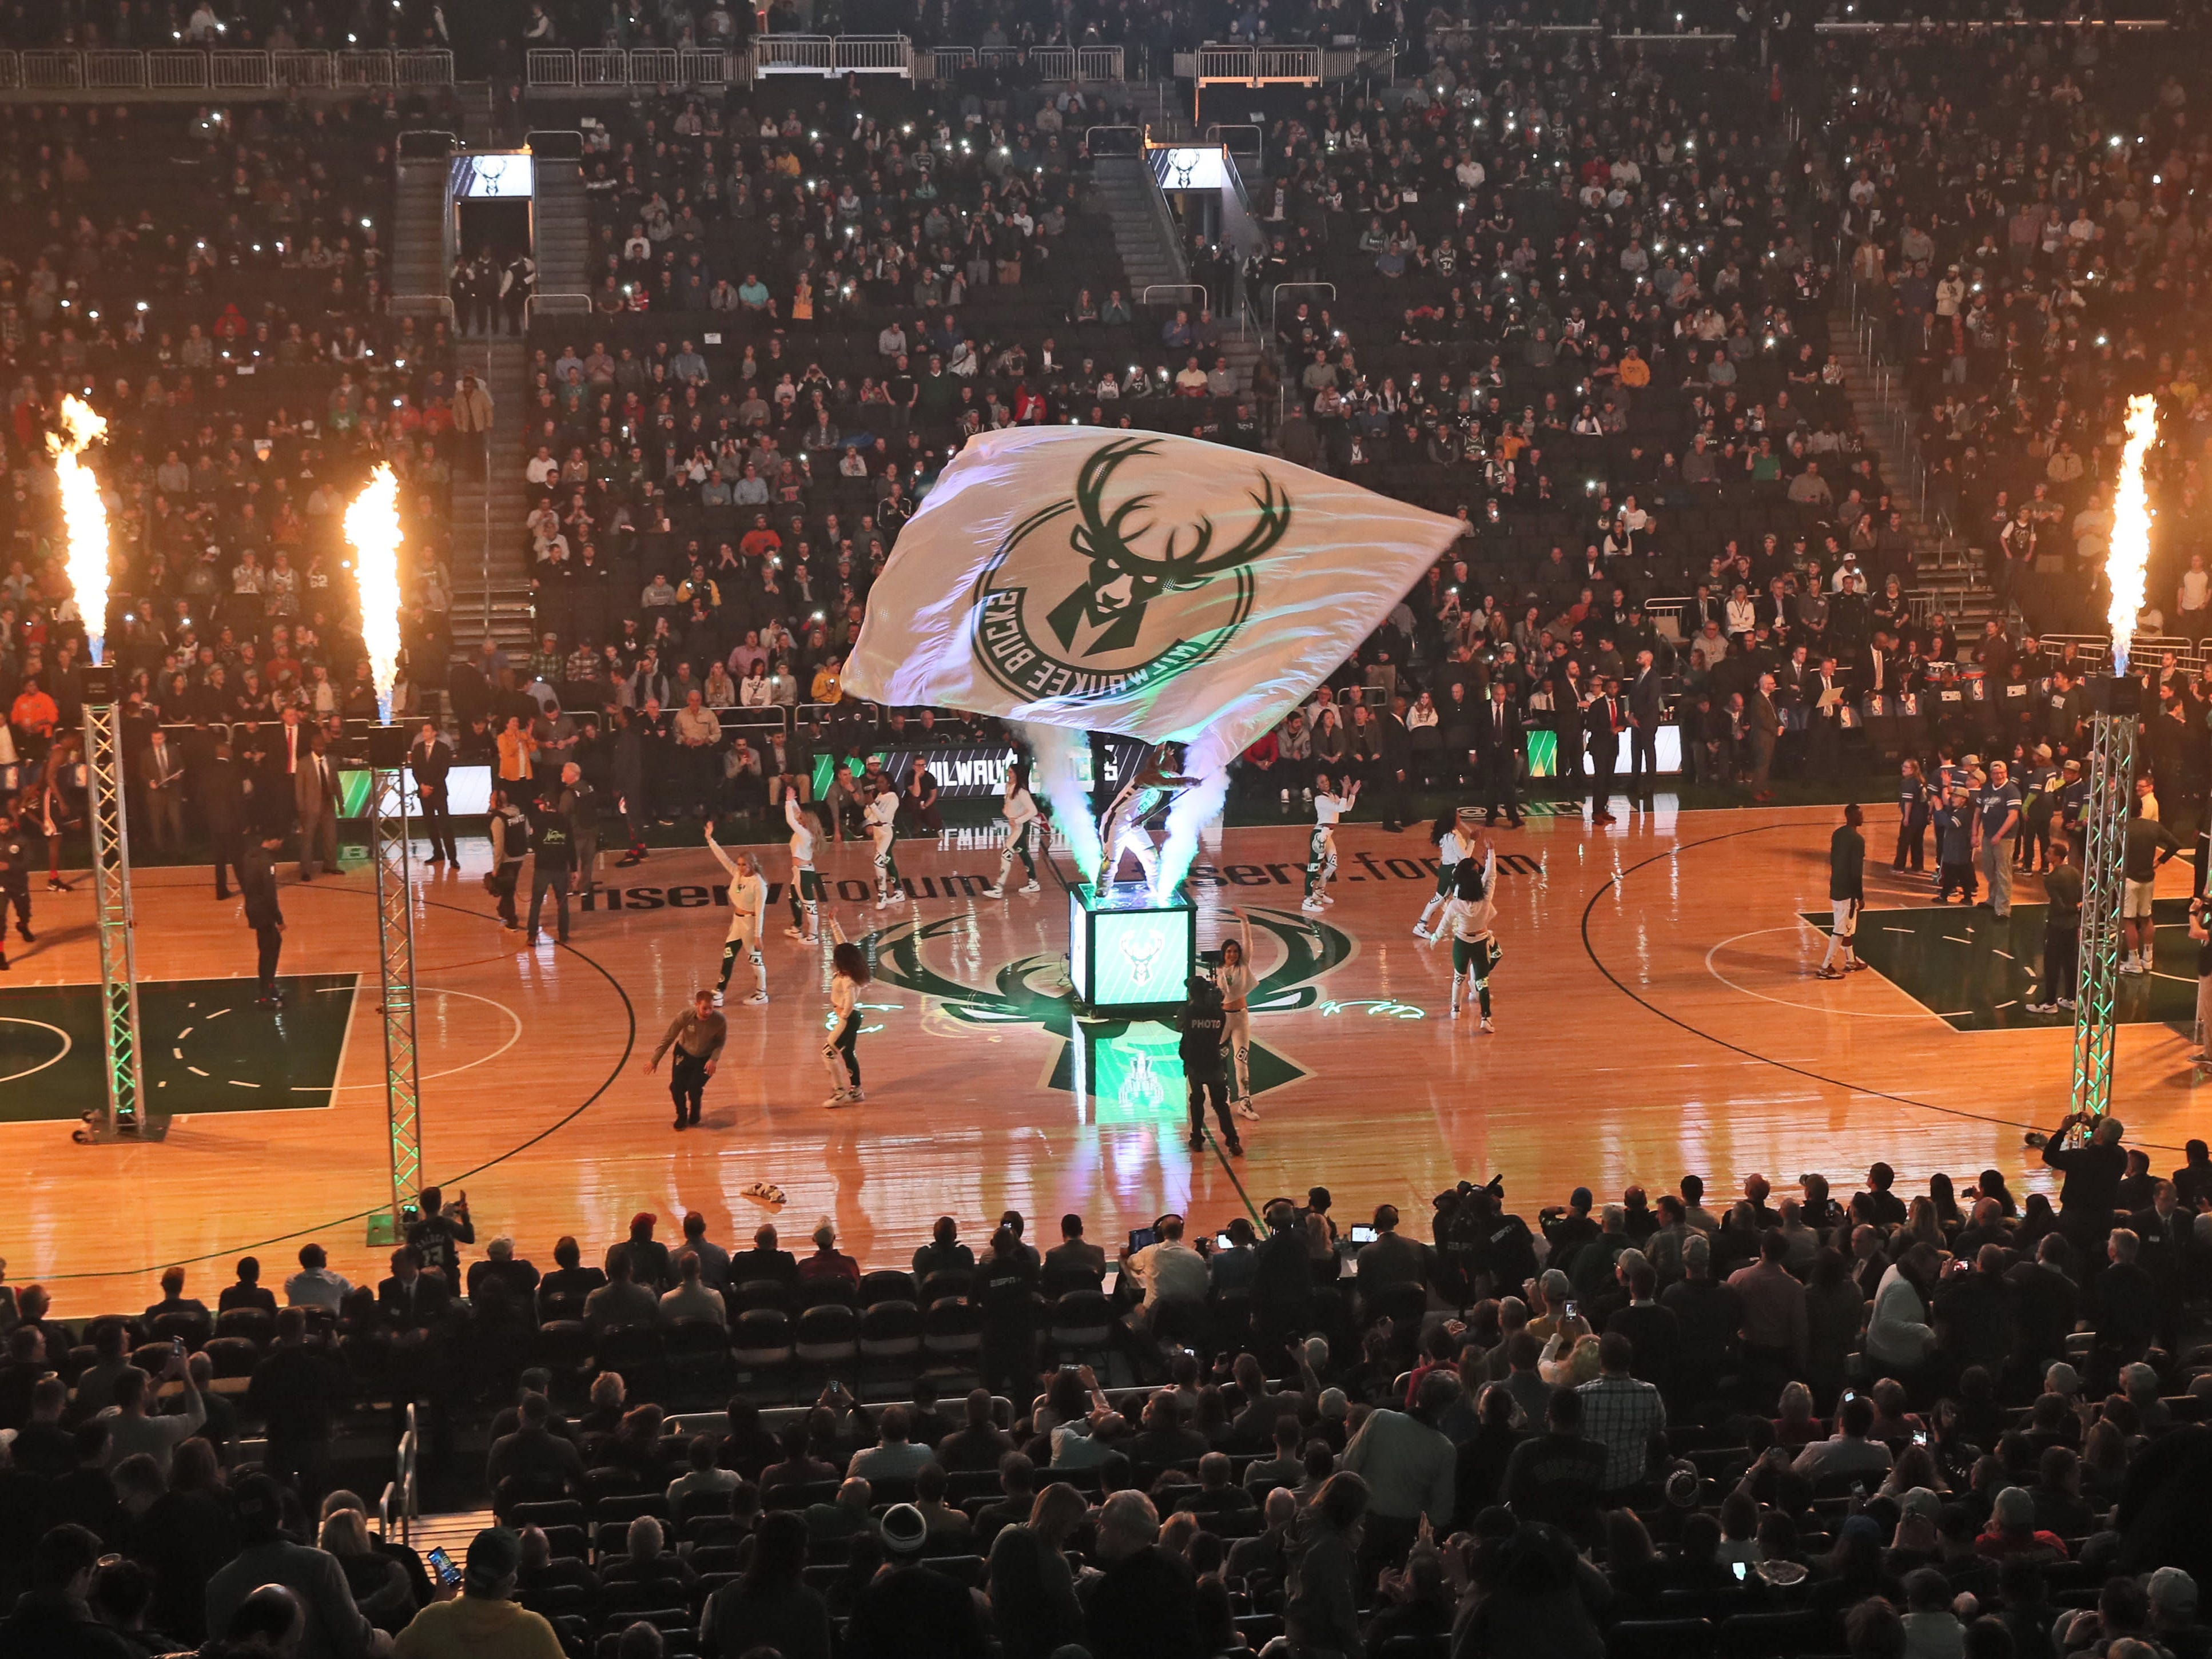 Bango, the Milwaukee Bucks mascot, waves the Bucks flag amid columns of flame as the players are introduced on Feb. 6. This is all part of the program that Johnny Watson has to keep moving smoothly.